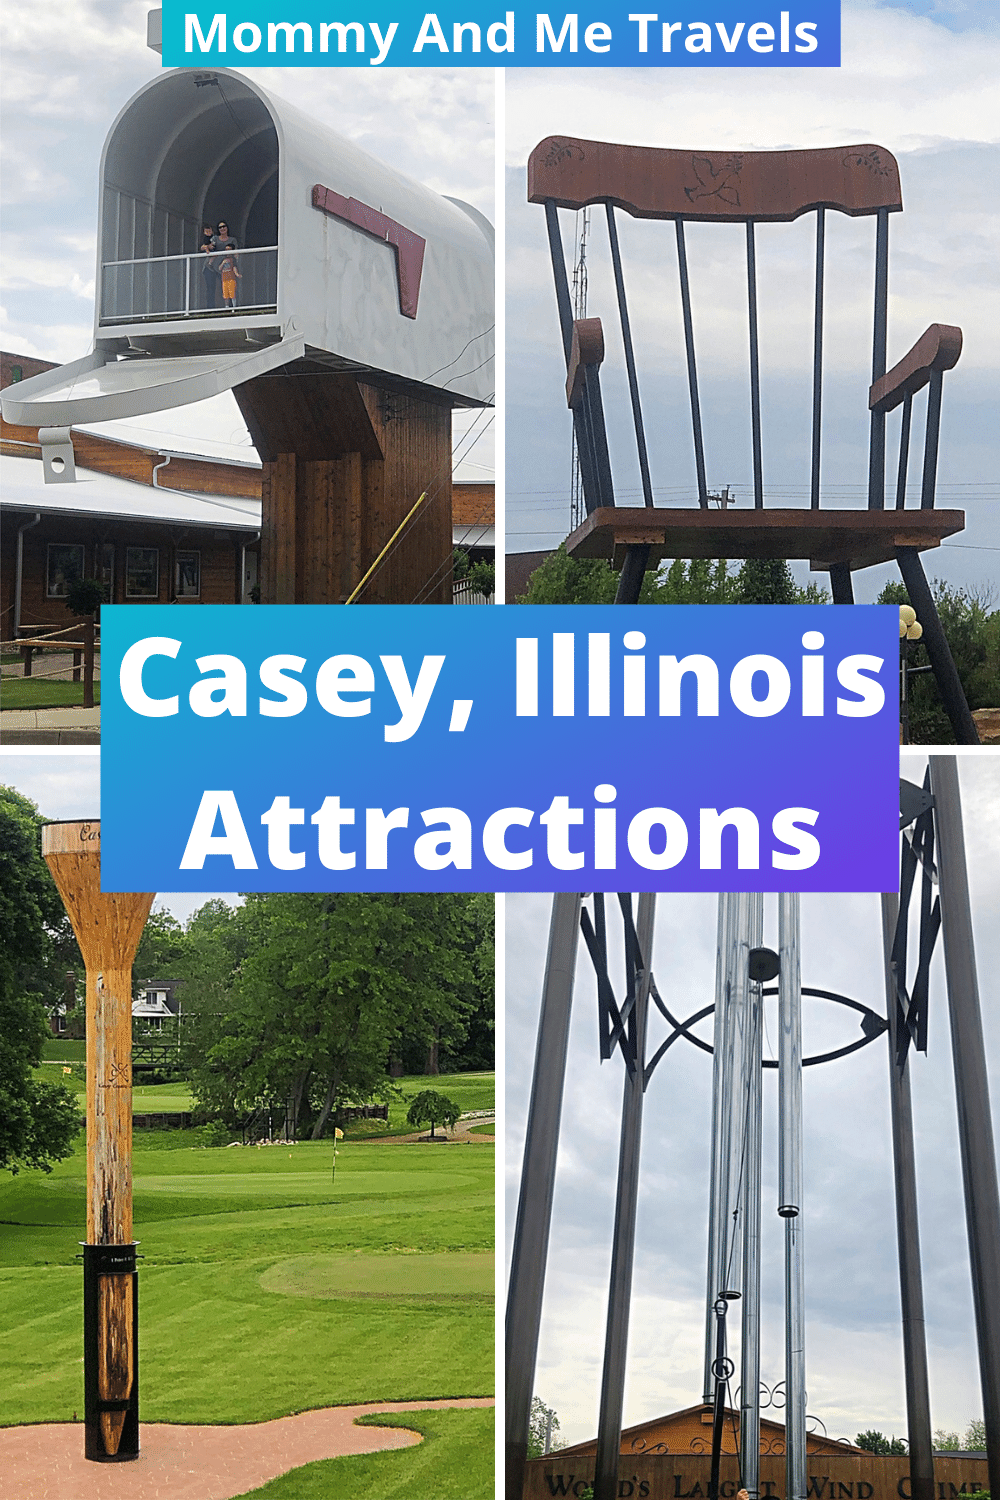 City of Casey, Illinois Attractions